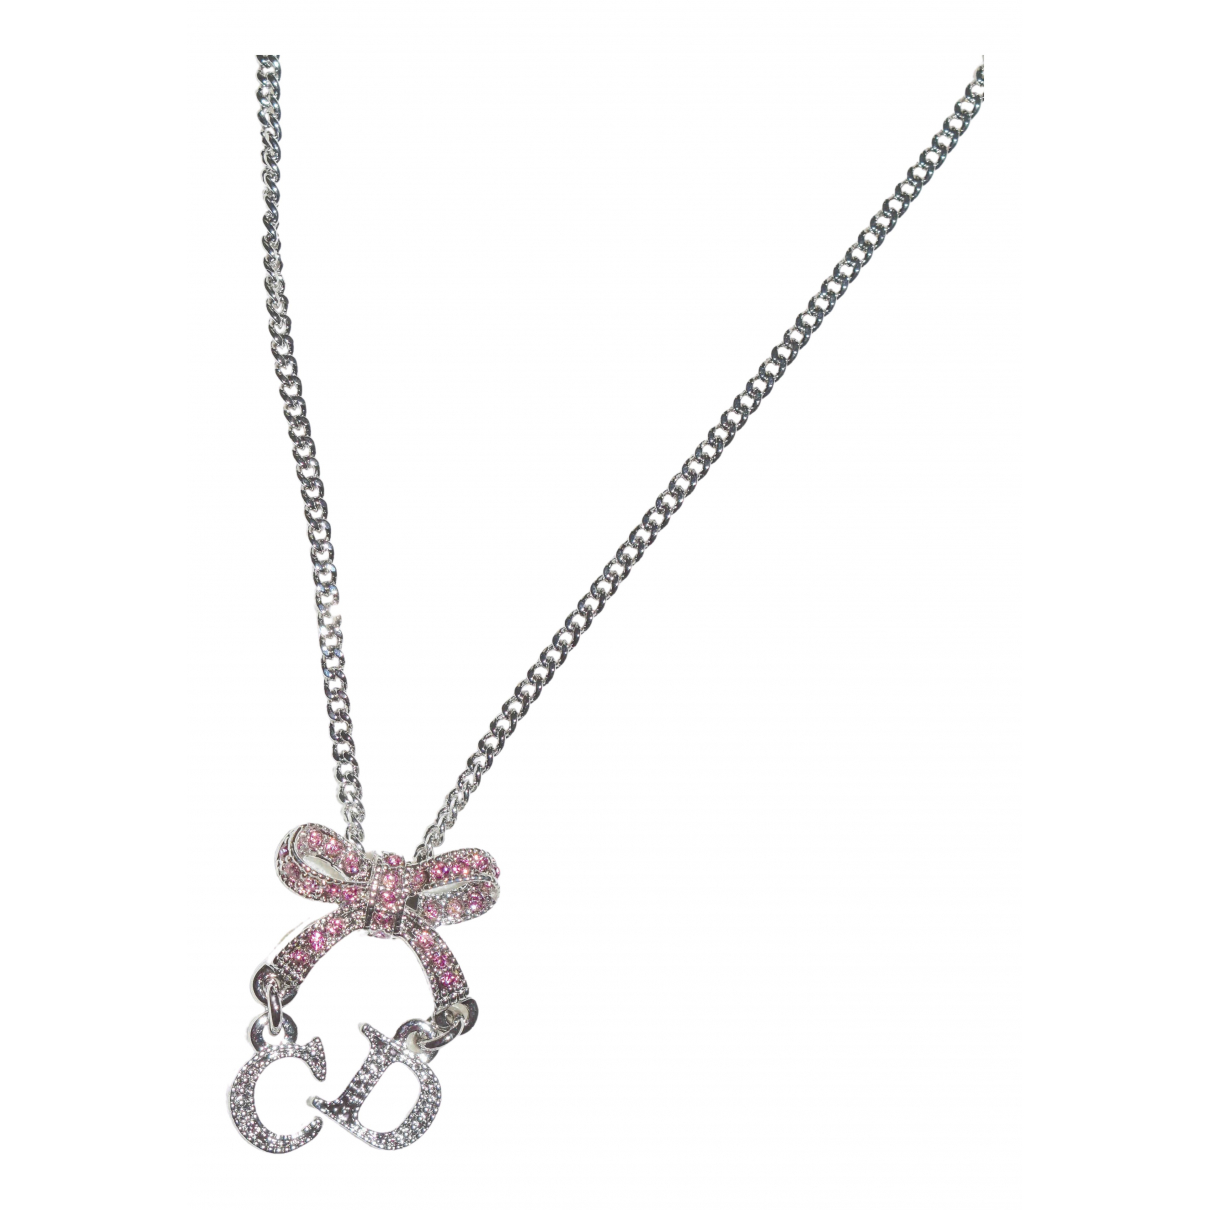 Dior N Silver Metal necklace for Women N